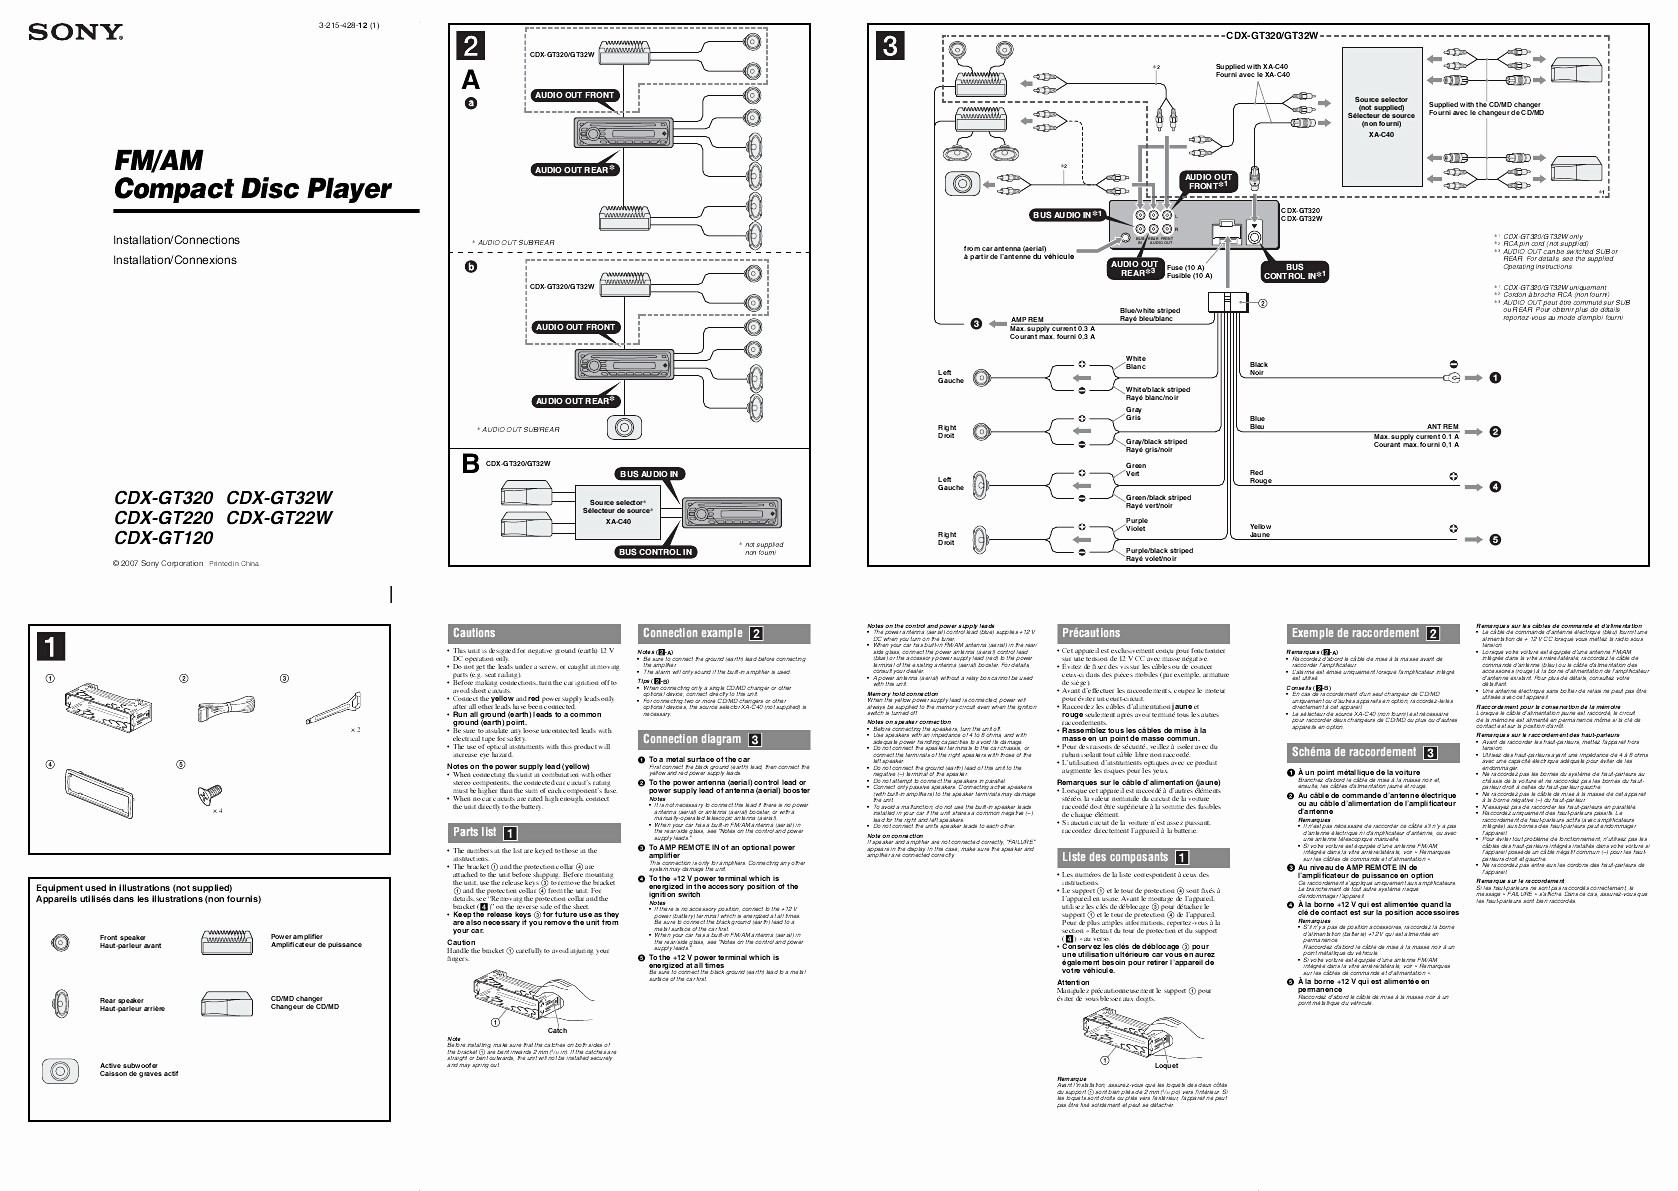 Sony Fm Am Compact Disc Player Wiring Diagram Wiring Diagram sony Xplod Cdx Gt330 Wiring Diagram Inspirational Of Sony Fm Am Compact Disc Player Wiring Diagram